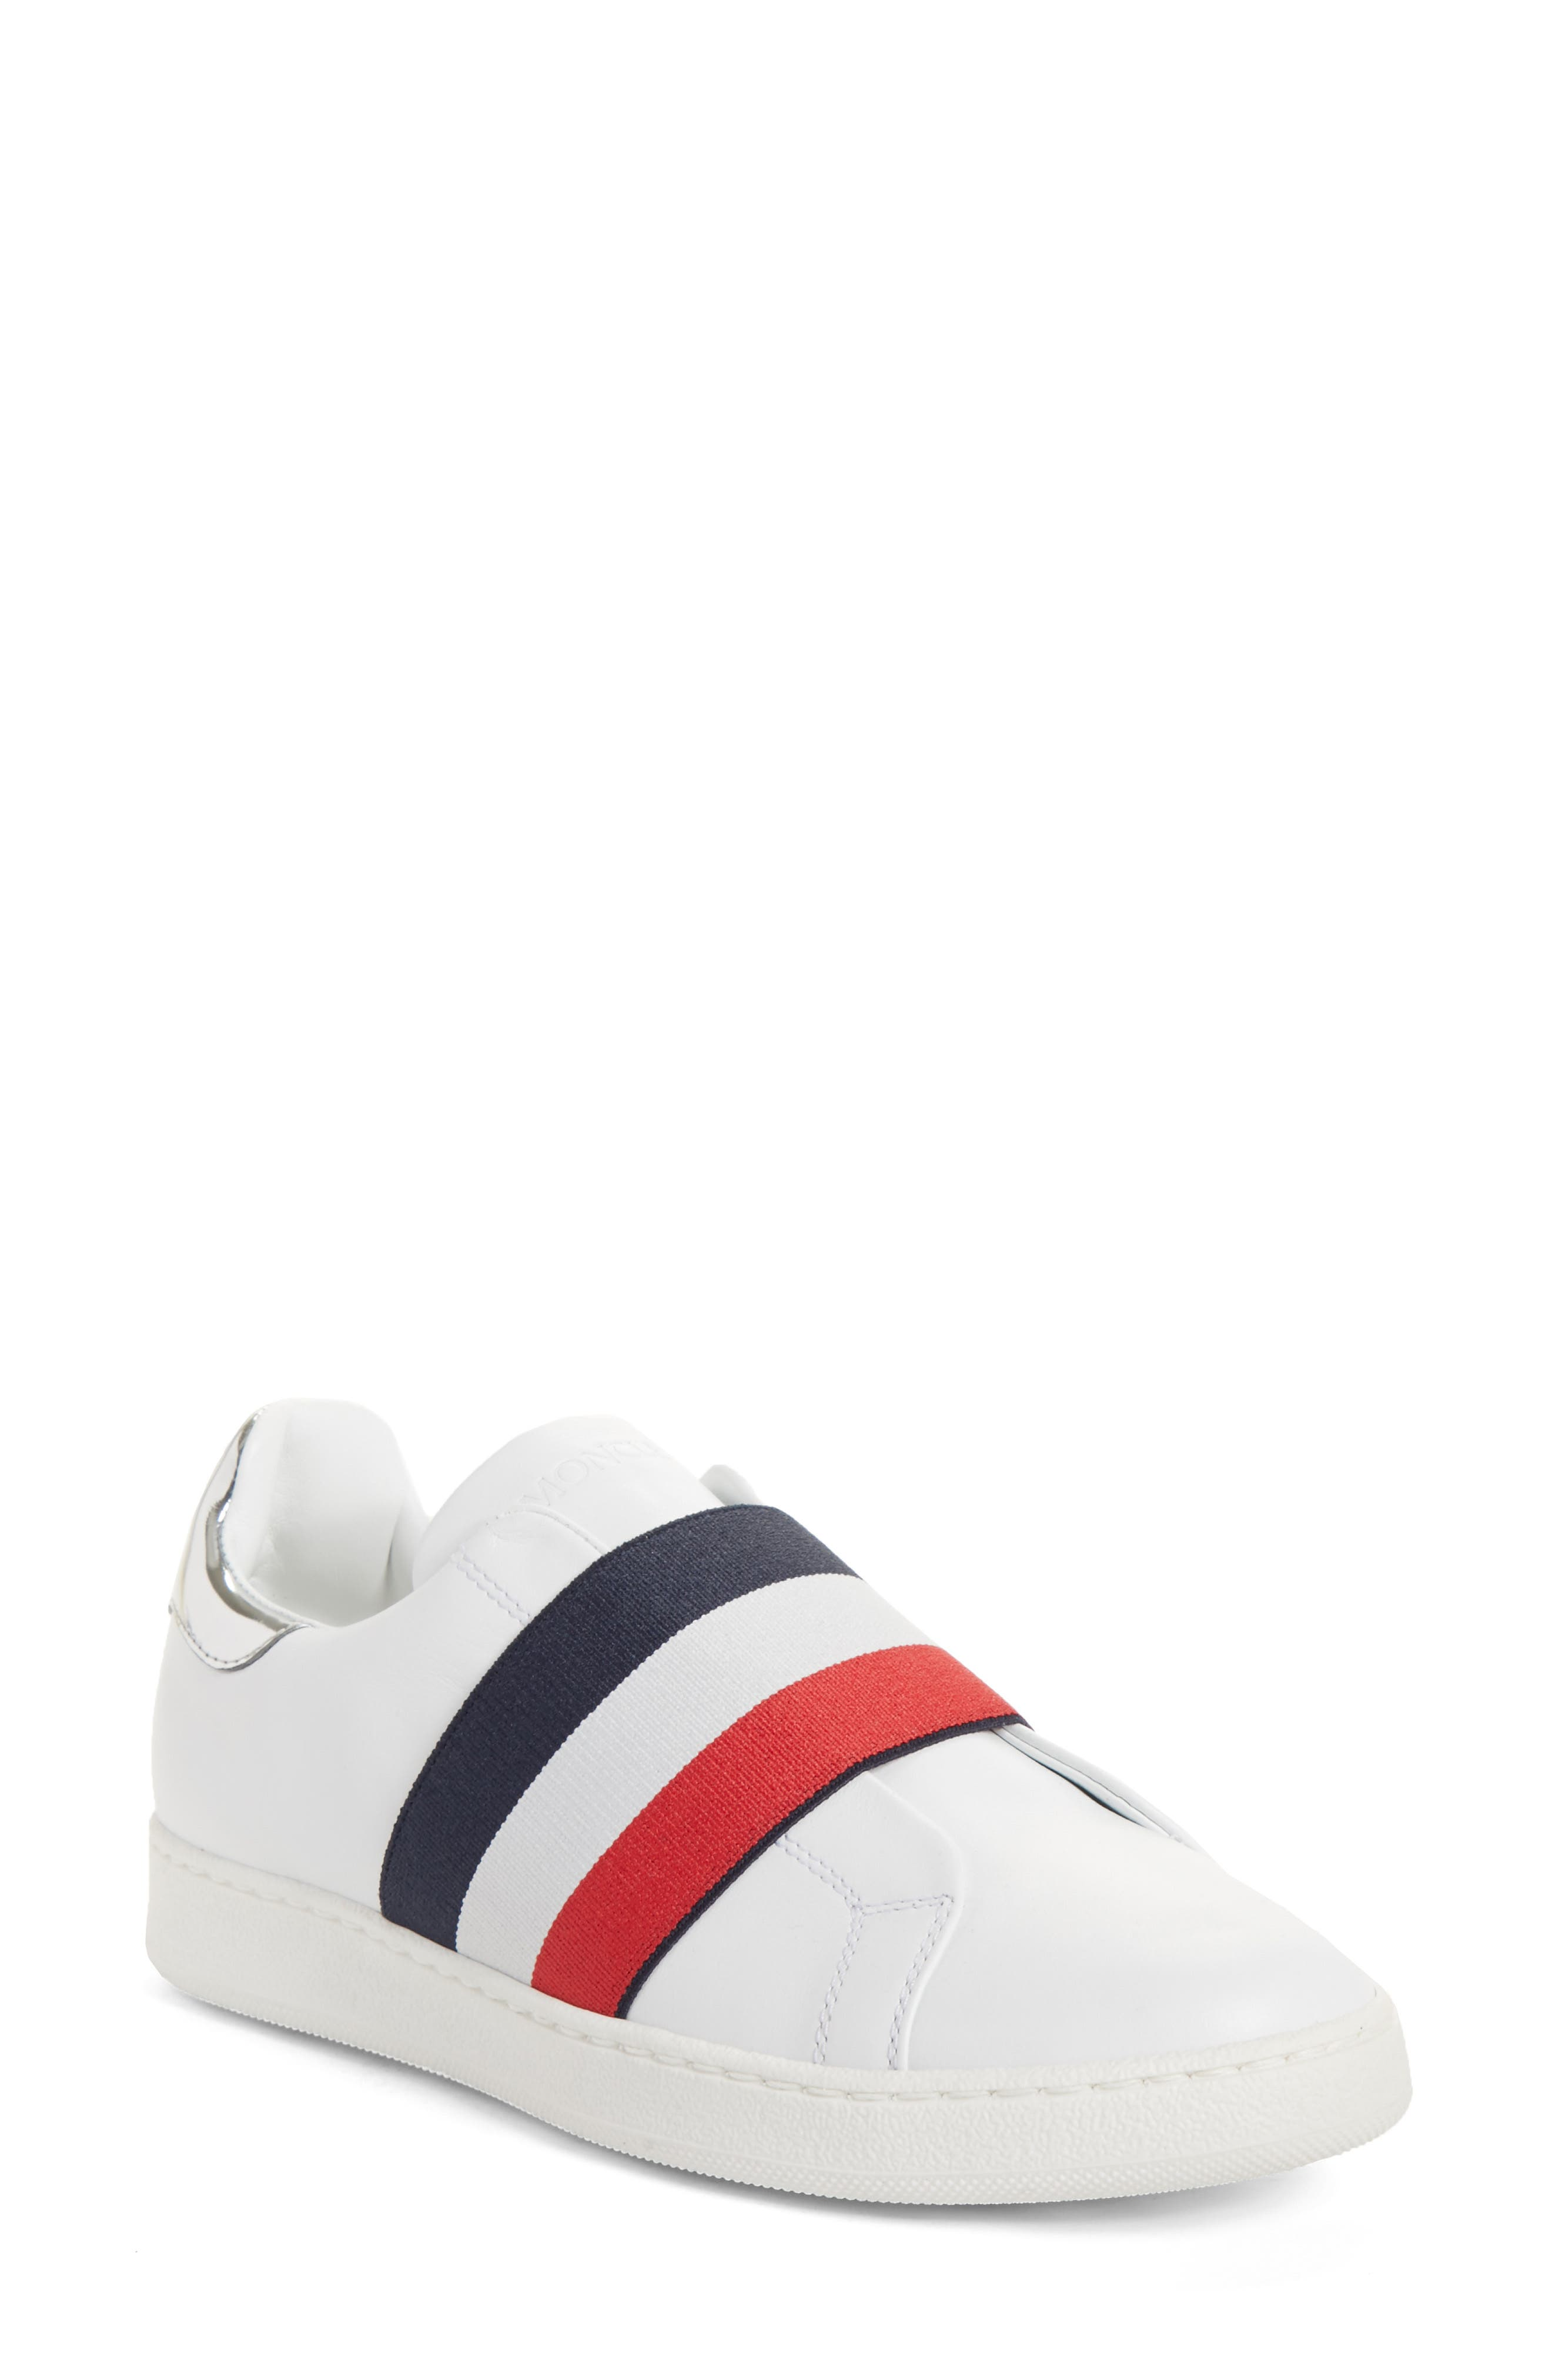 Alizee Low Top Sneaker,                         Main,                         color, White